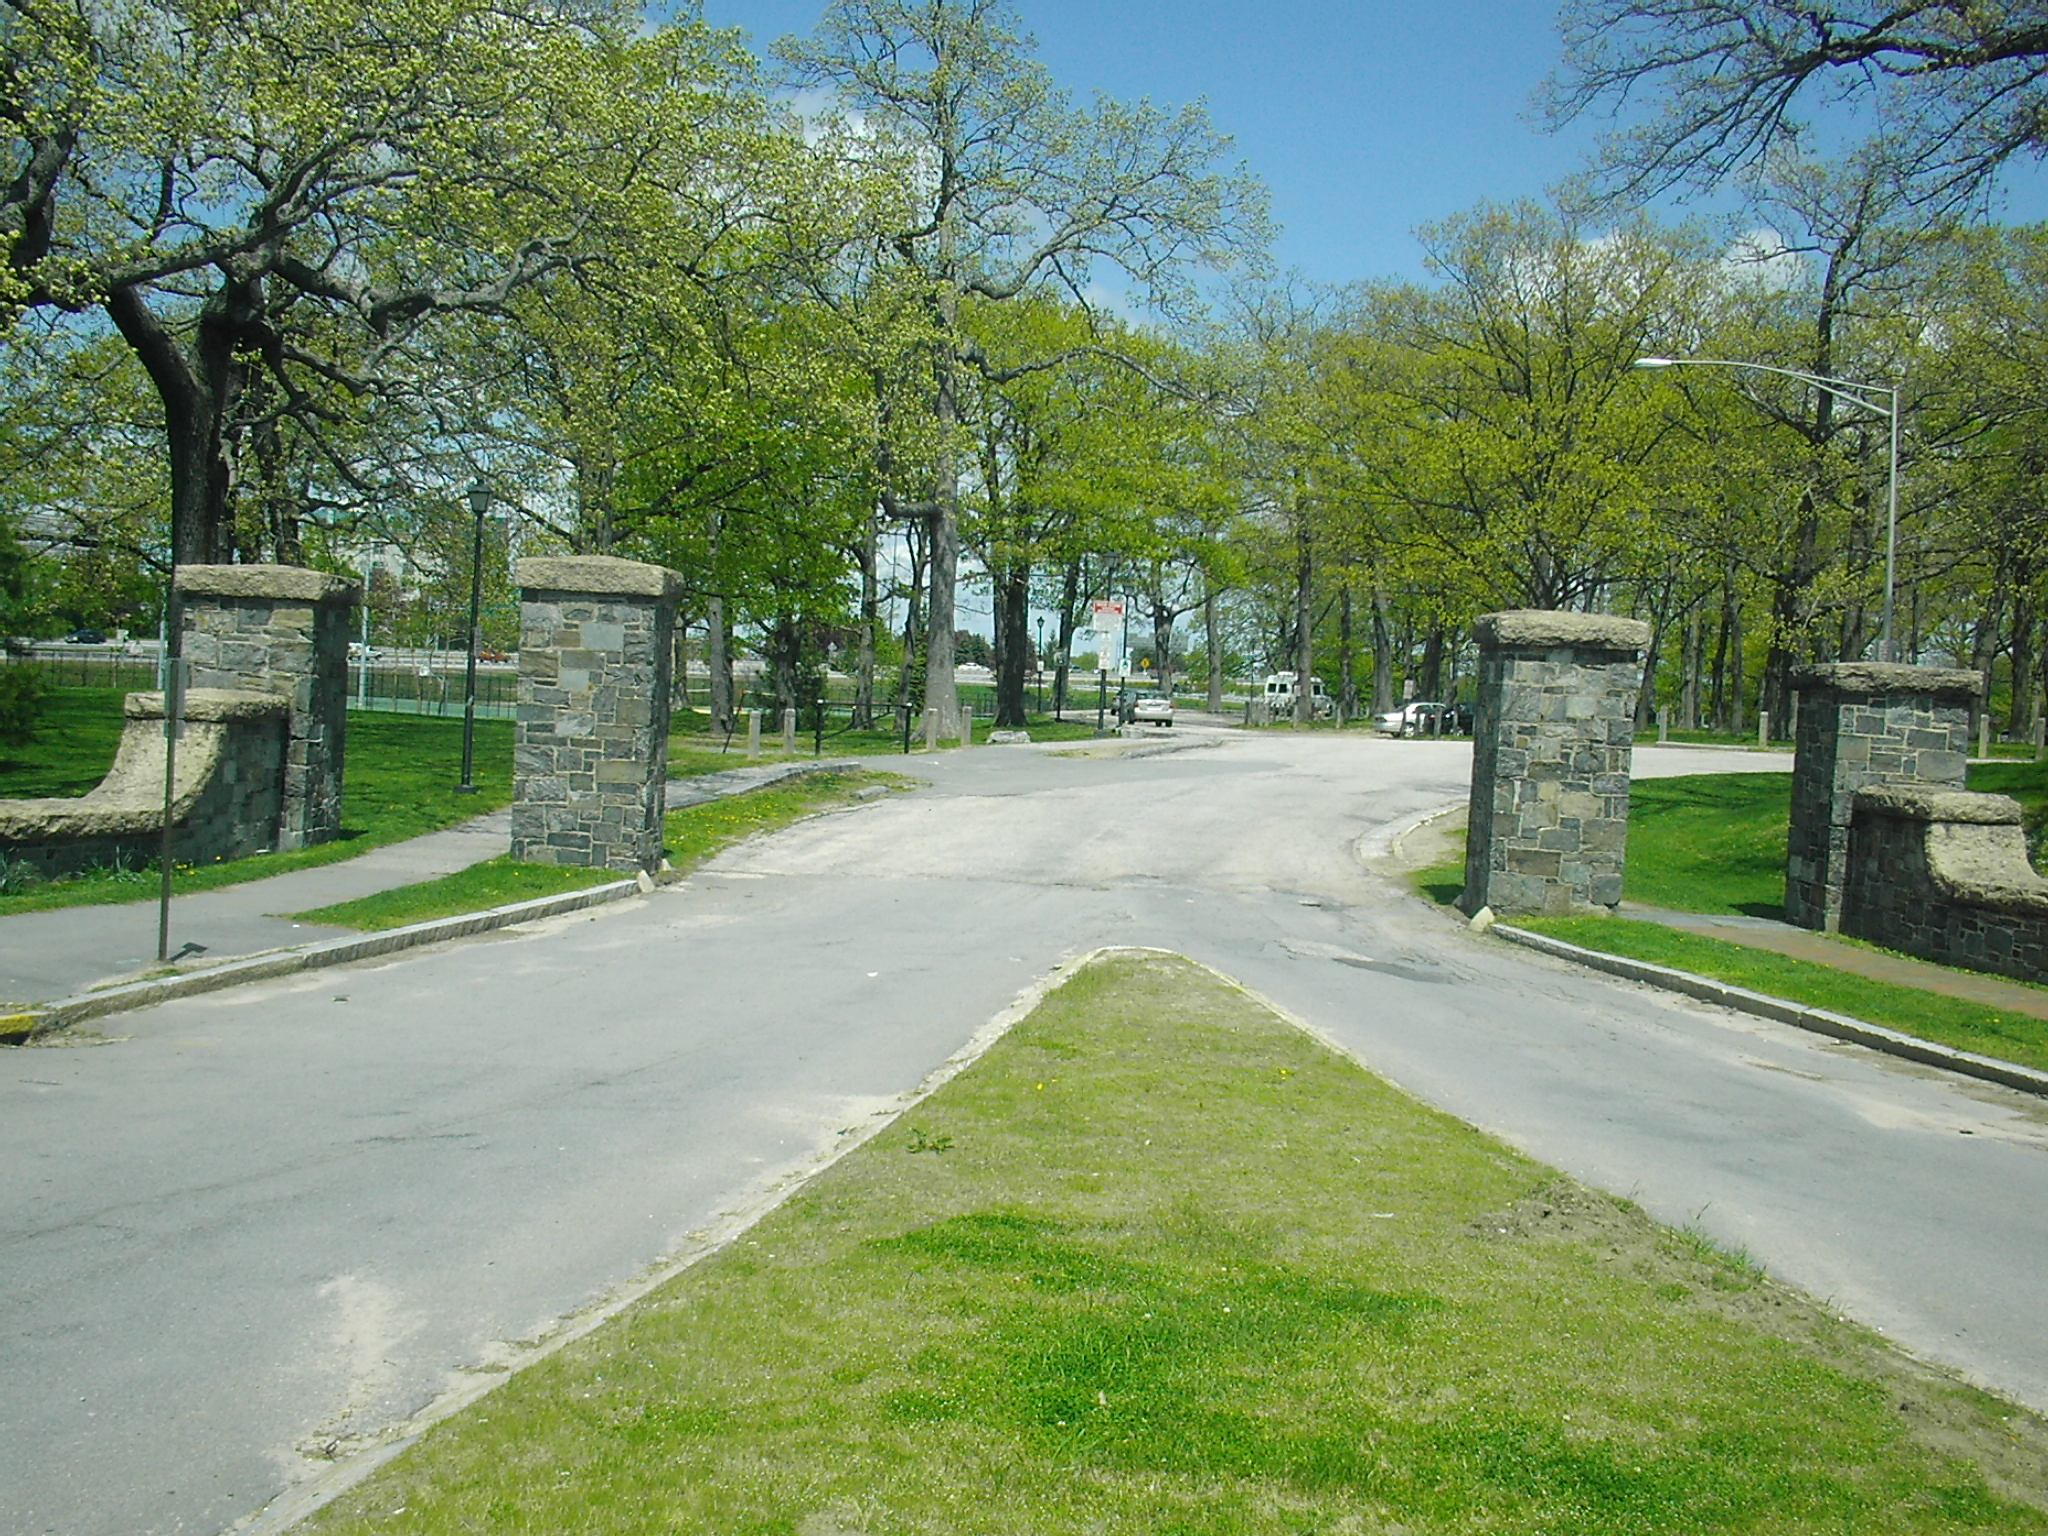 The Entrance to Deering Oaks by Namiba at Wikipedia English Foundation